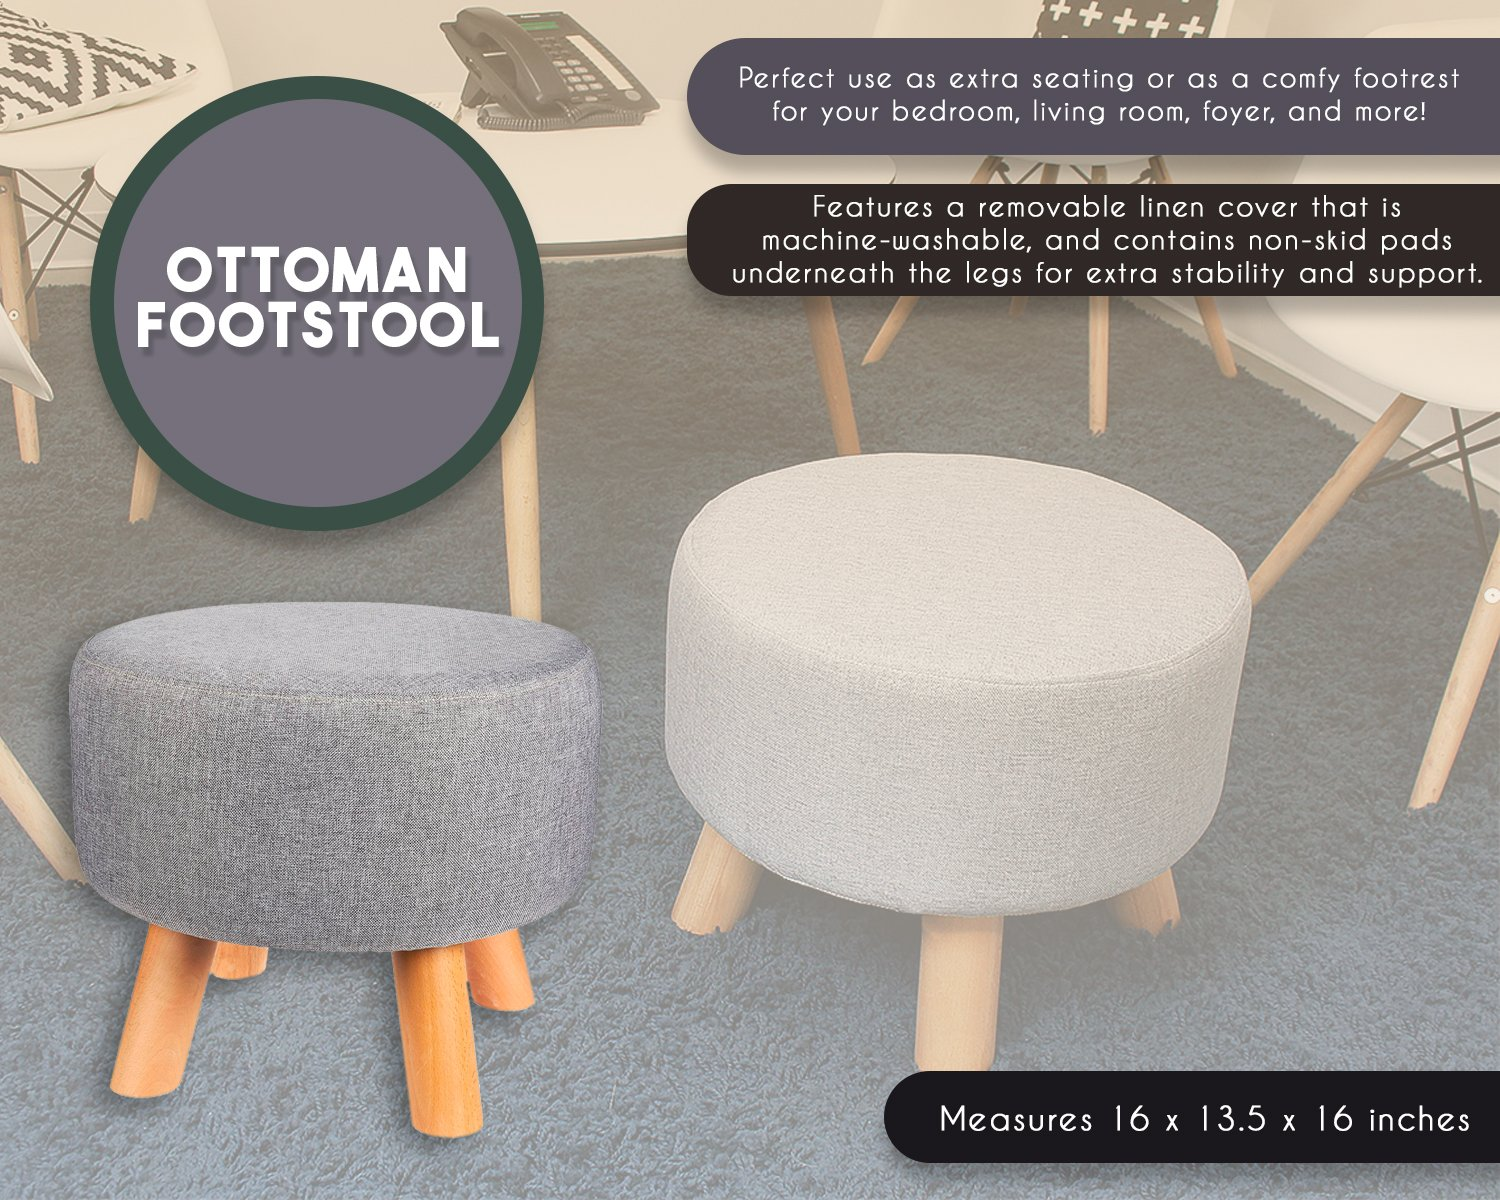 Lob Design Pouf.Juvale Ottoman Footstool Round Pouf Foot Stool Rest With